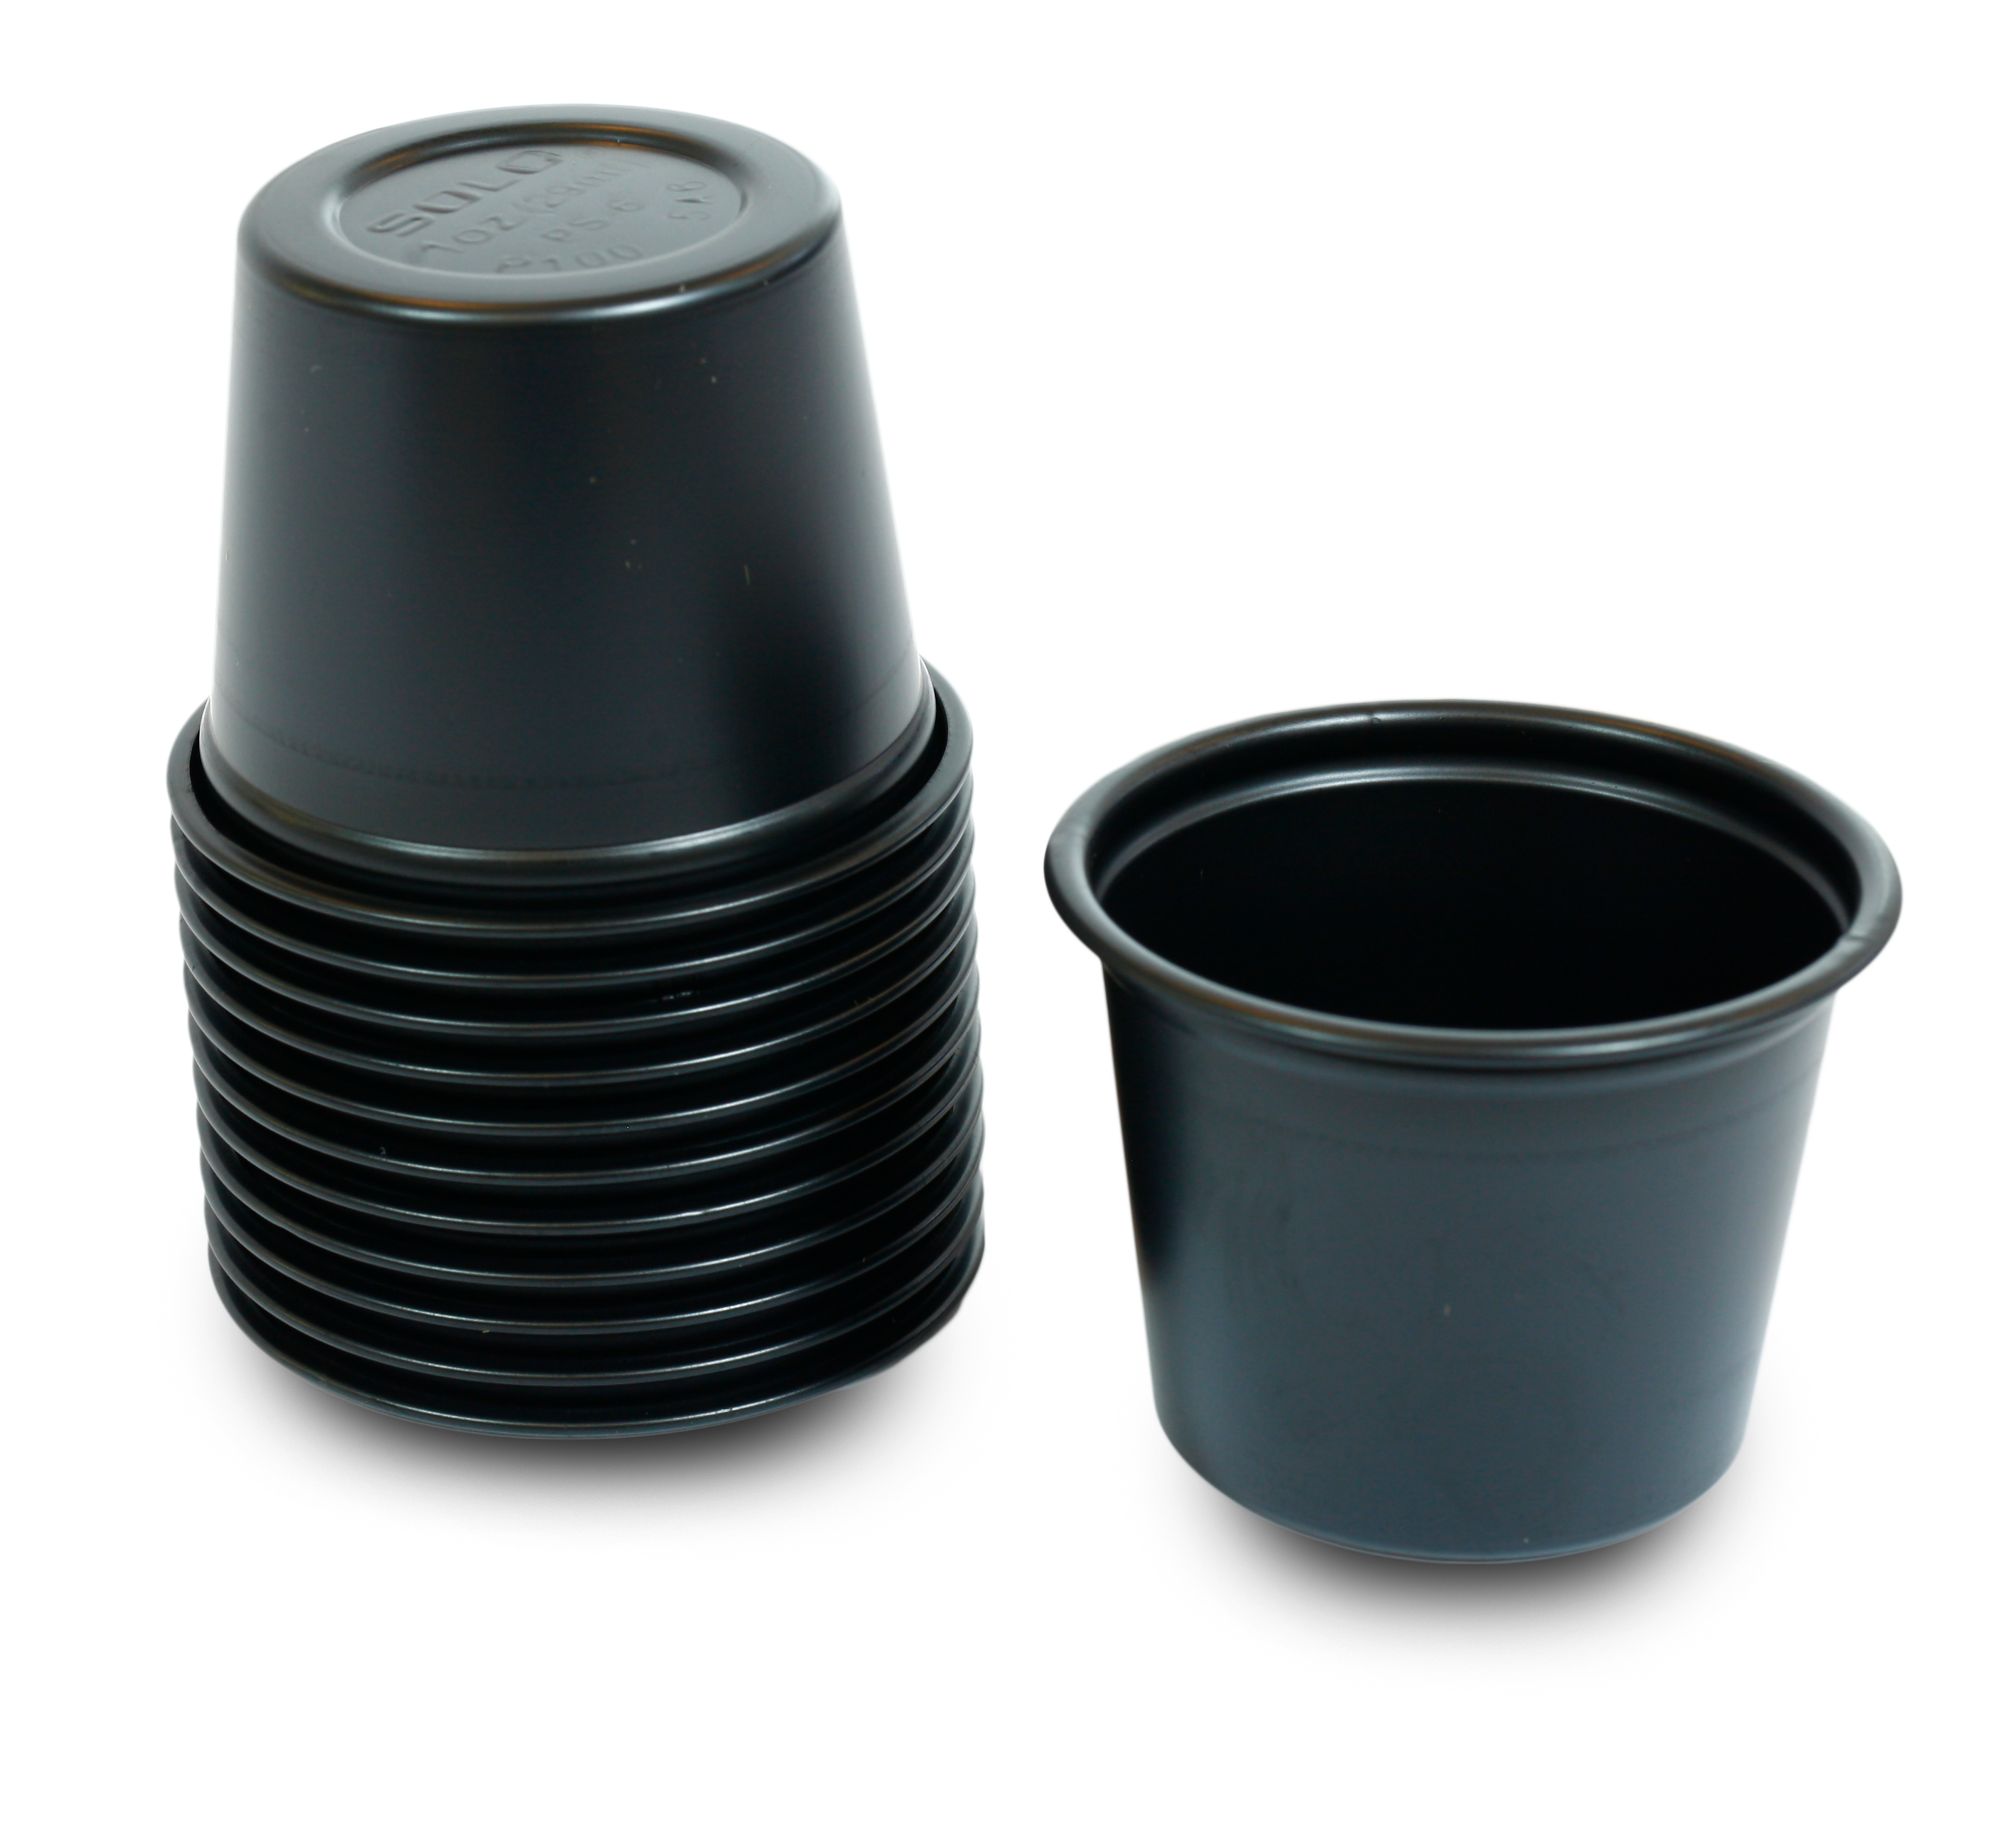 Soy-cup and lid